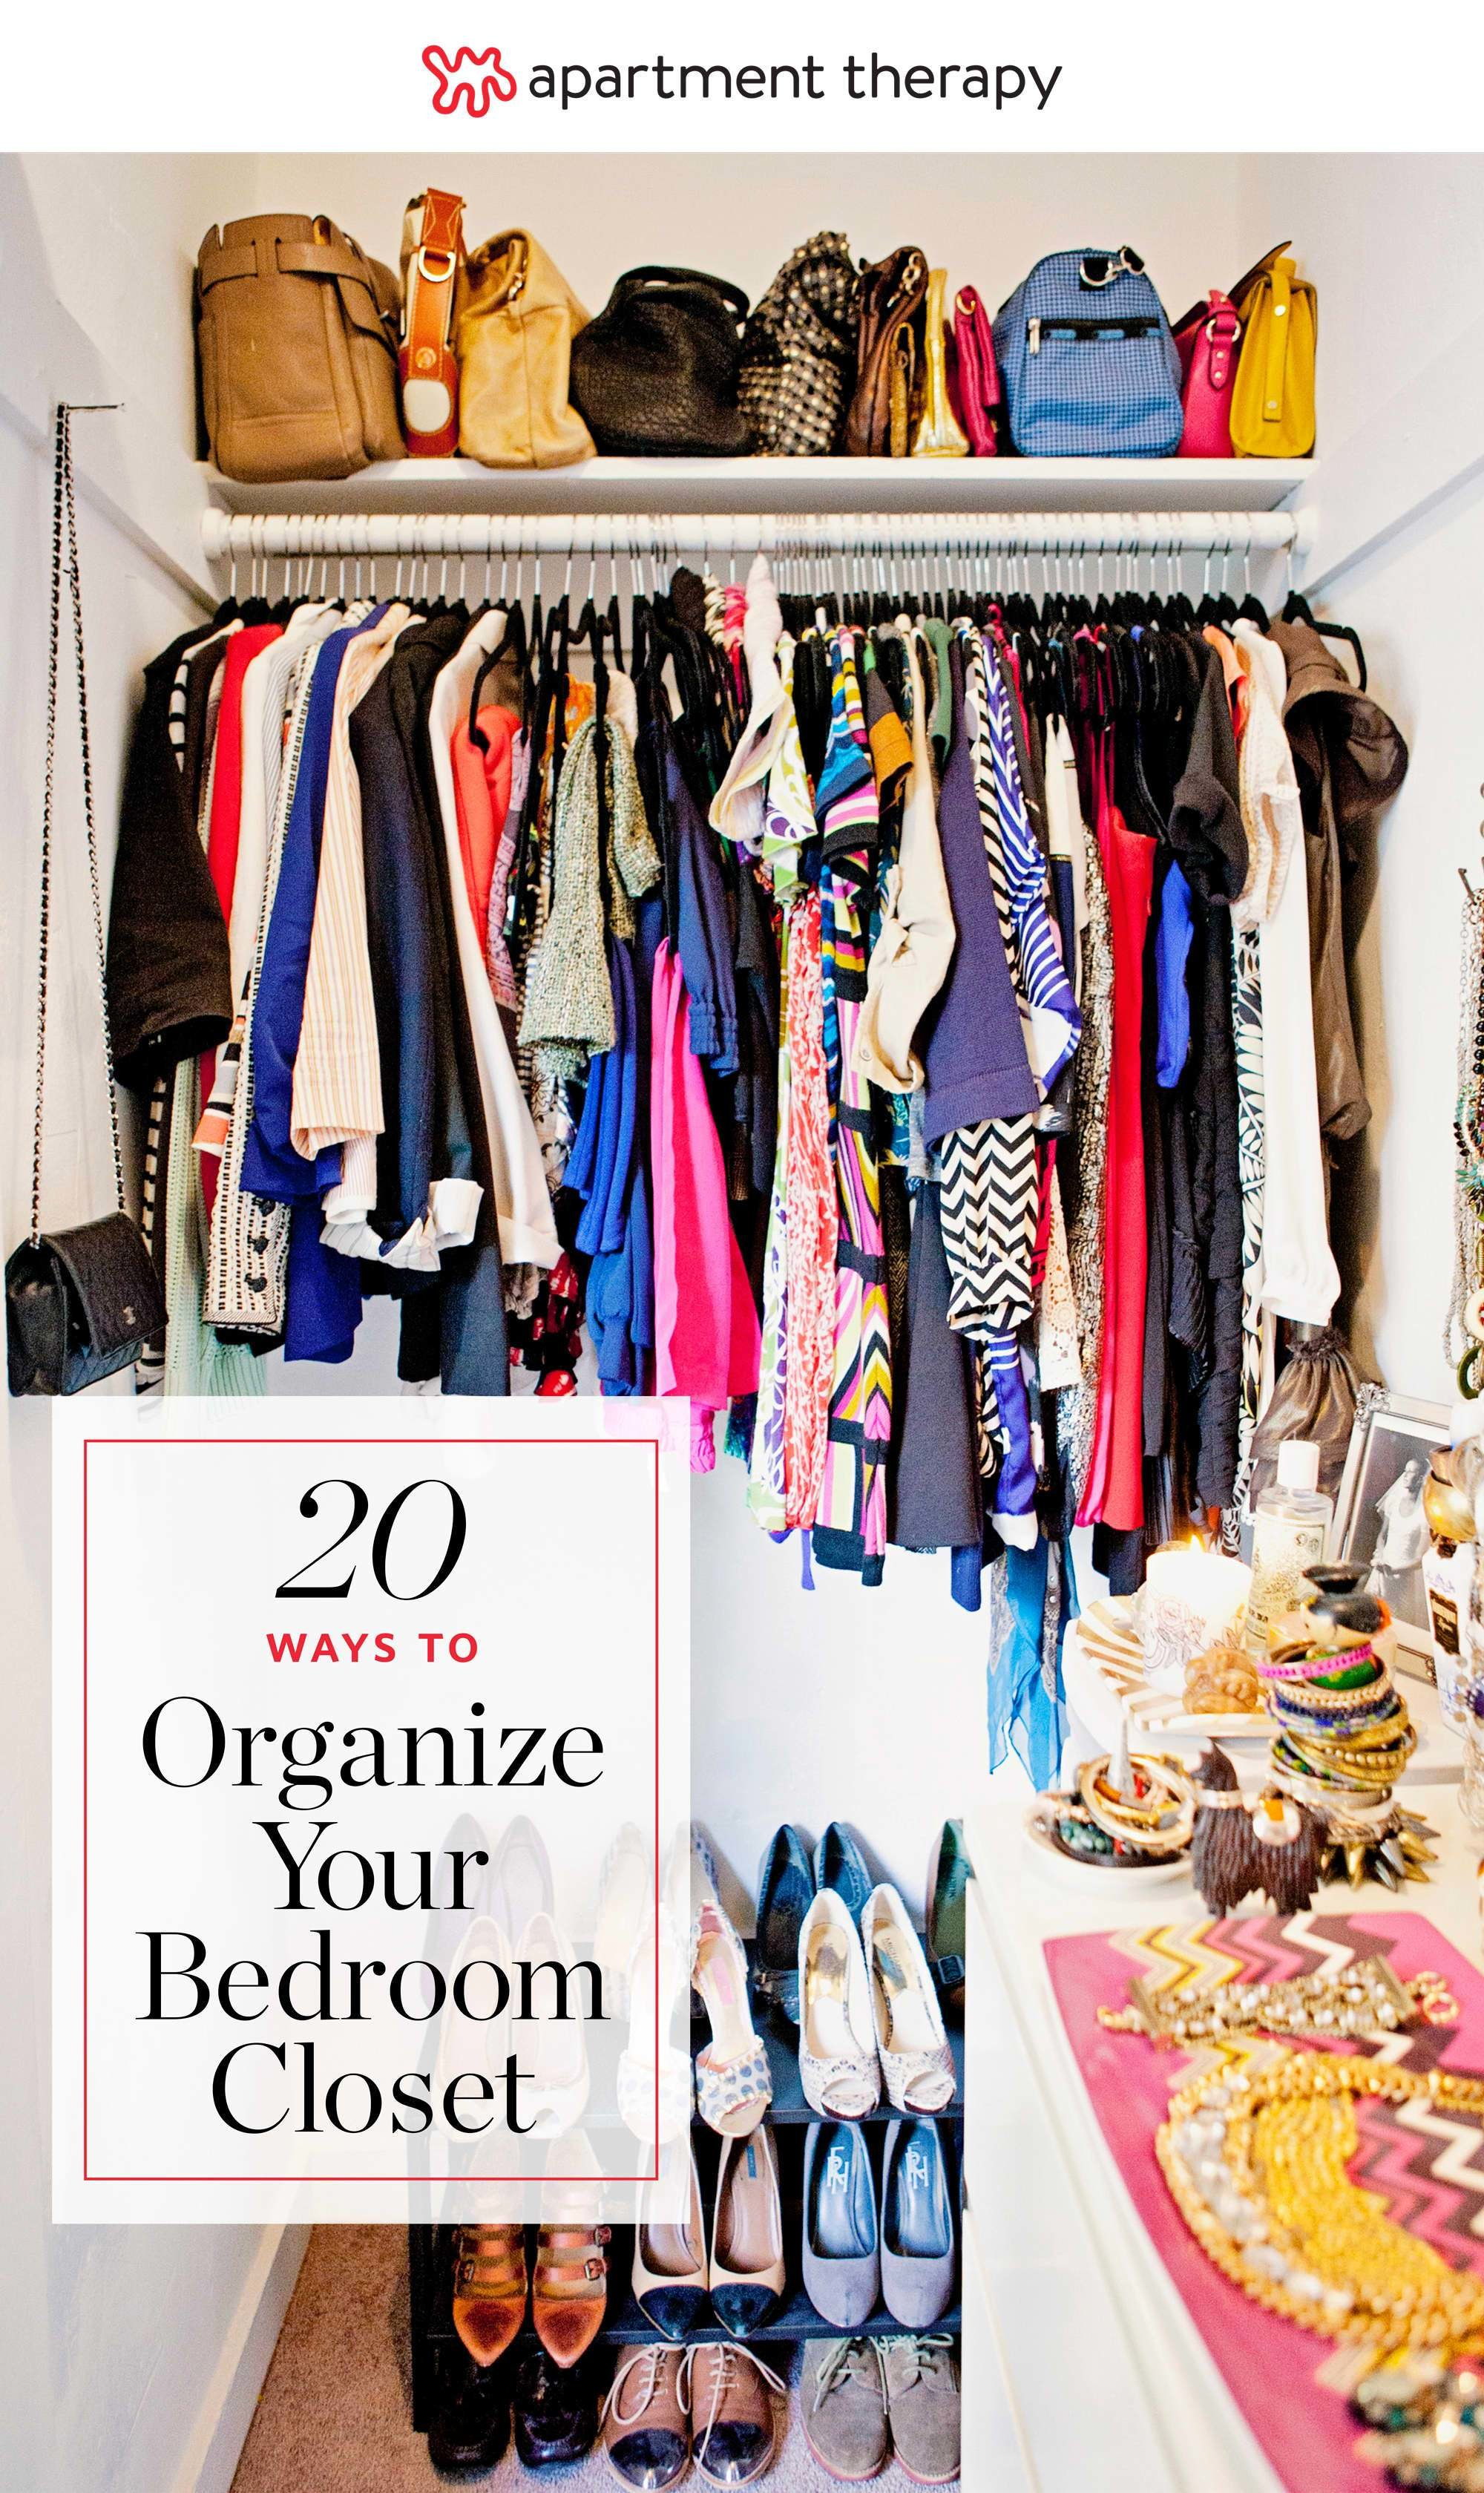 Best 20 Ideas For Organizing Your Bedroom Closet Apartment With Pictures